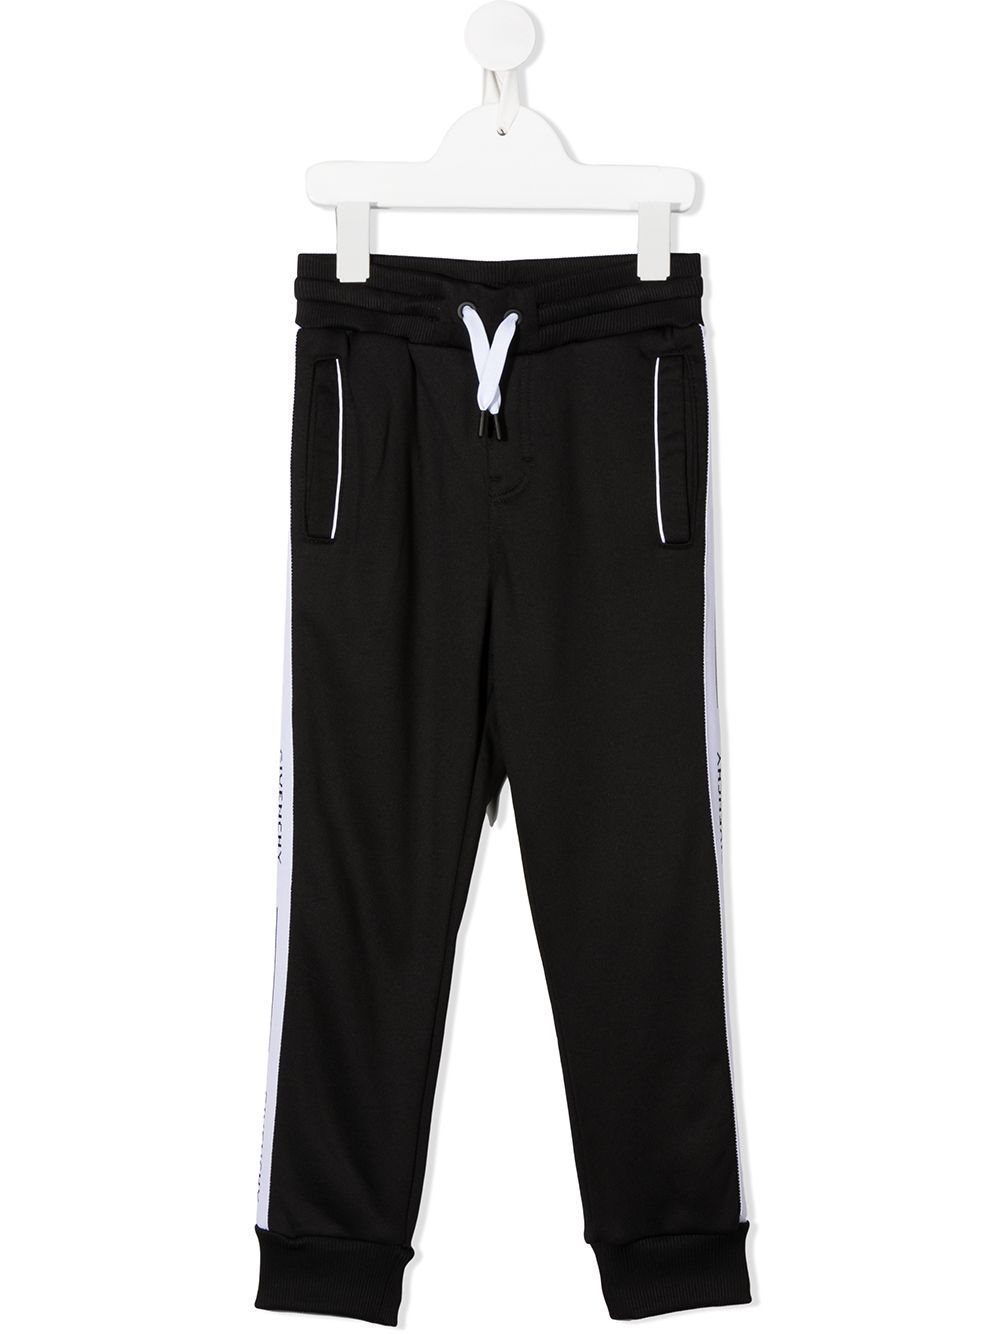 GIVENCHY KIDS Logo Sweatpants Black/White